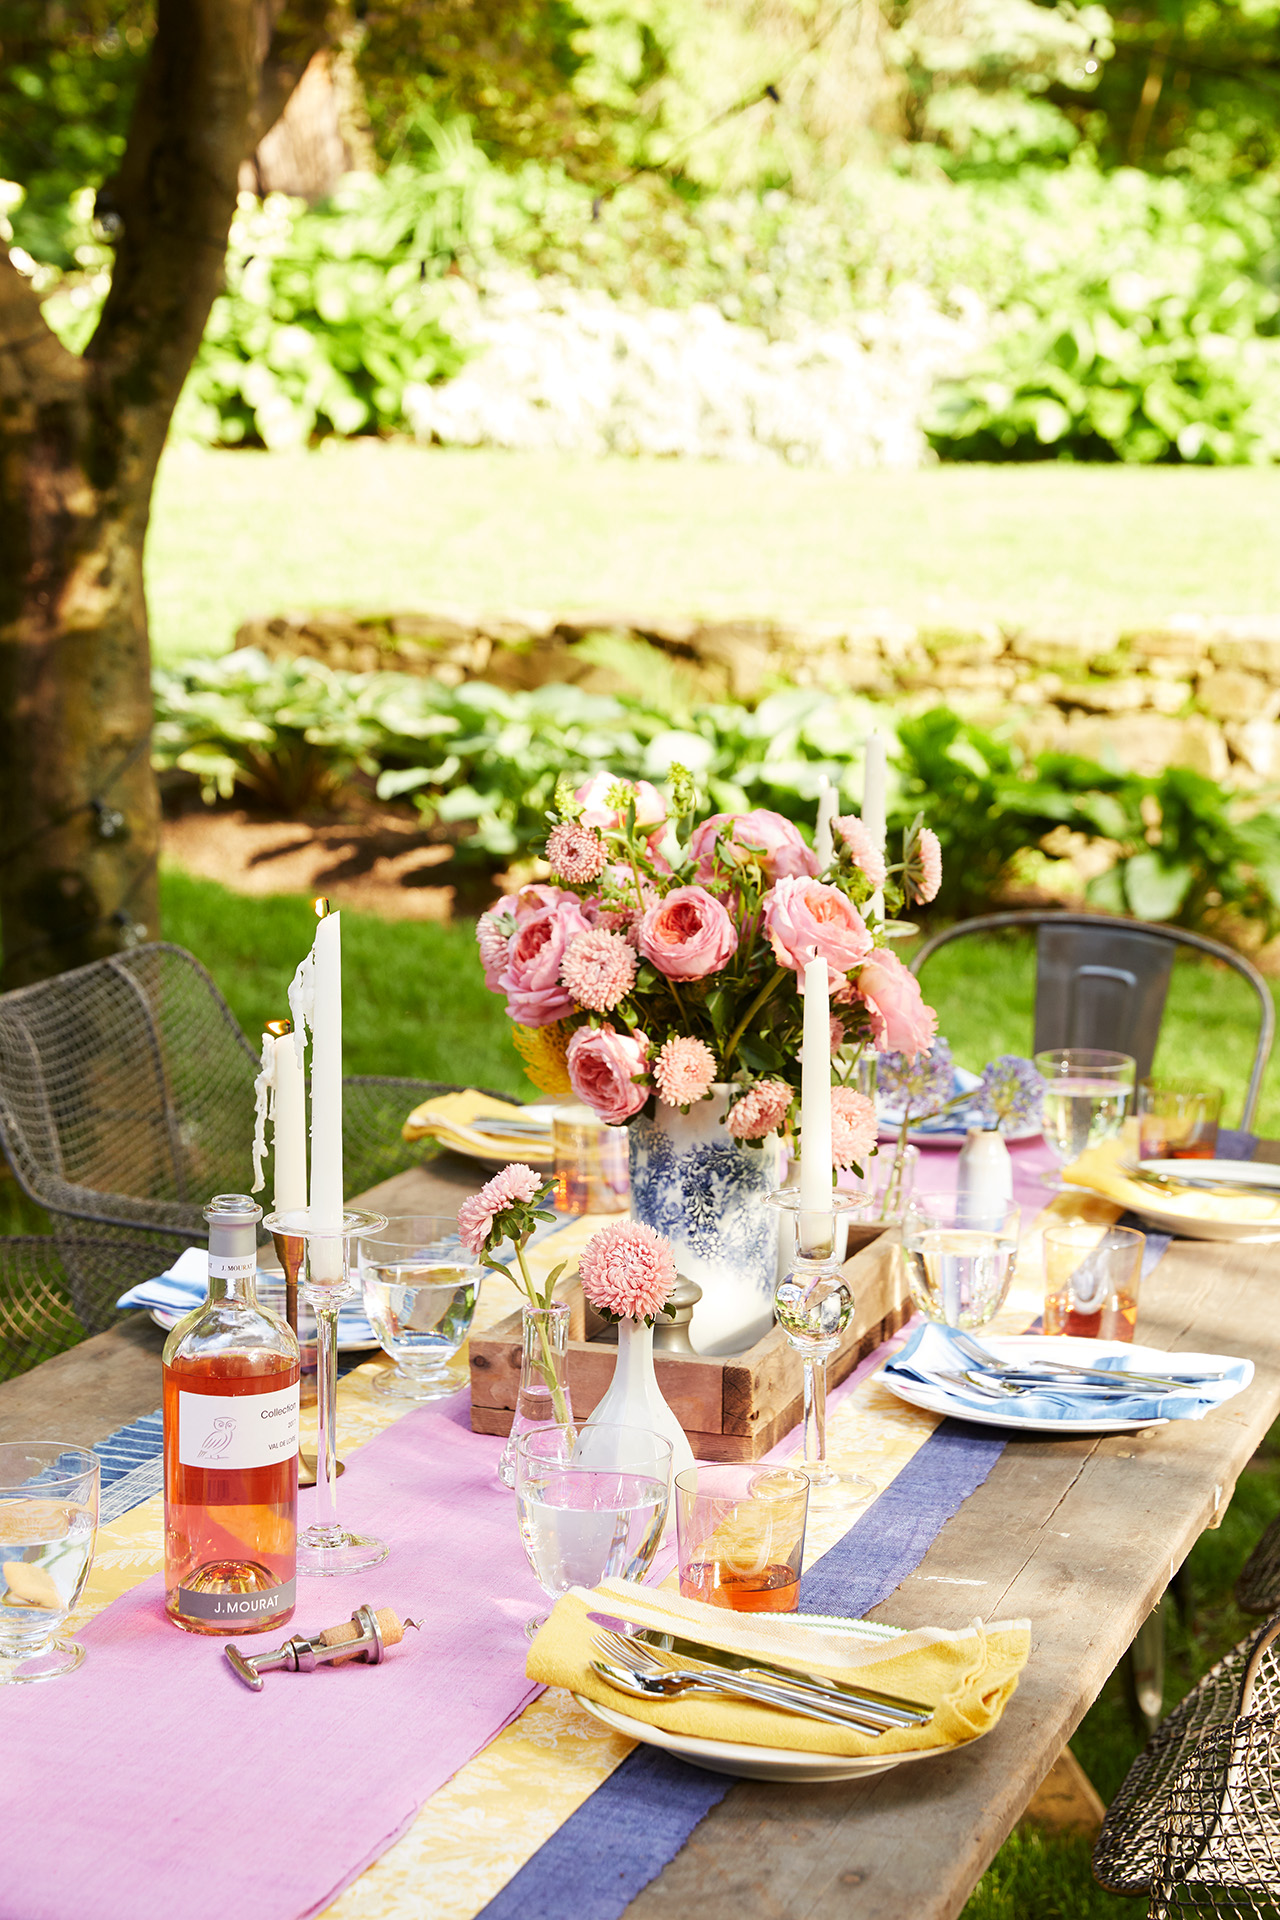 Julia Turshen's Top Tips for Throwing the Ultimate Party